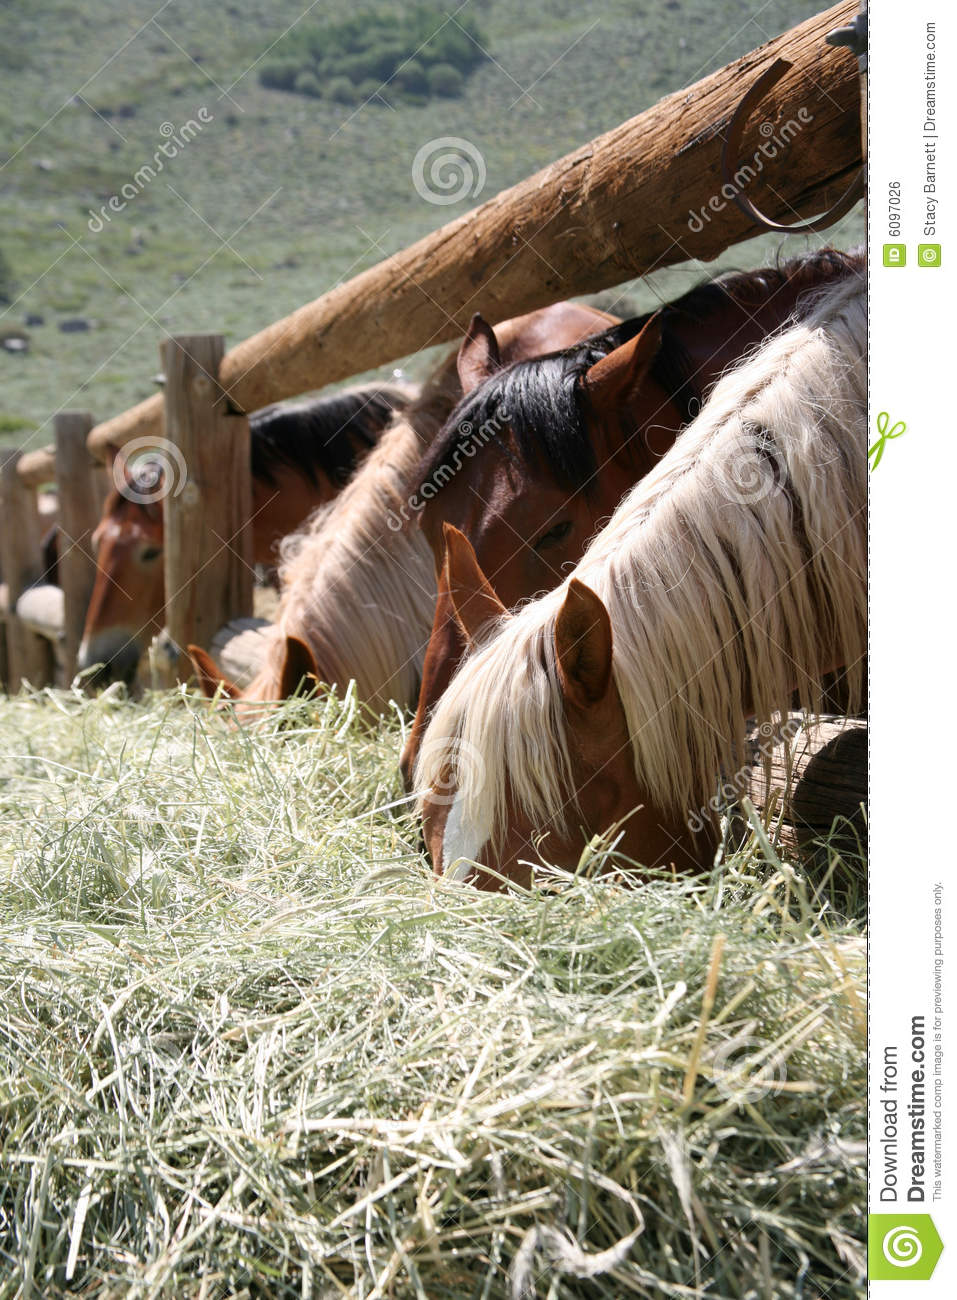 Horse eating country